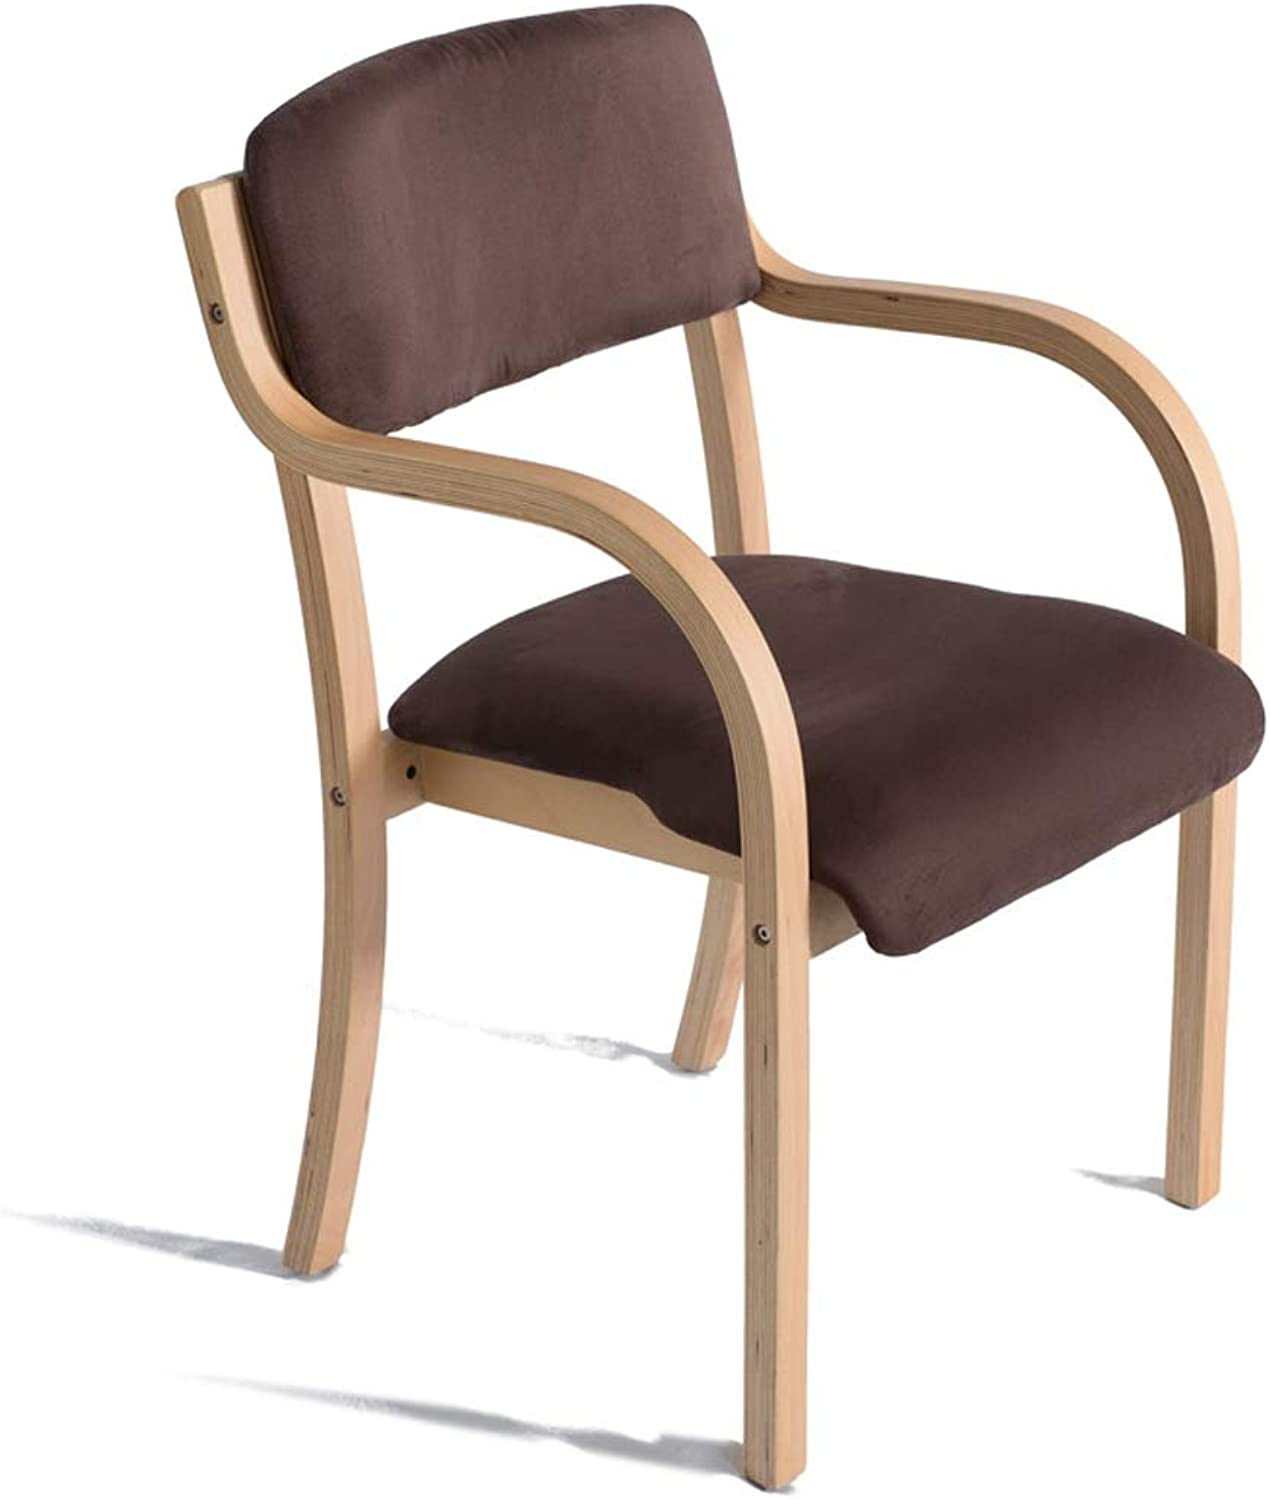 CXQ Modern Minimalist Solid Wood Leather Dining Chair Study Chair Office Home Desk Chair Computer Chair (color   Wood color)